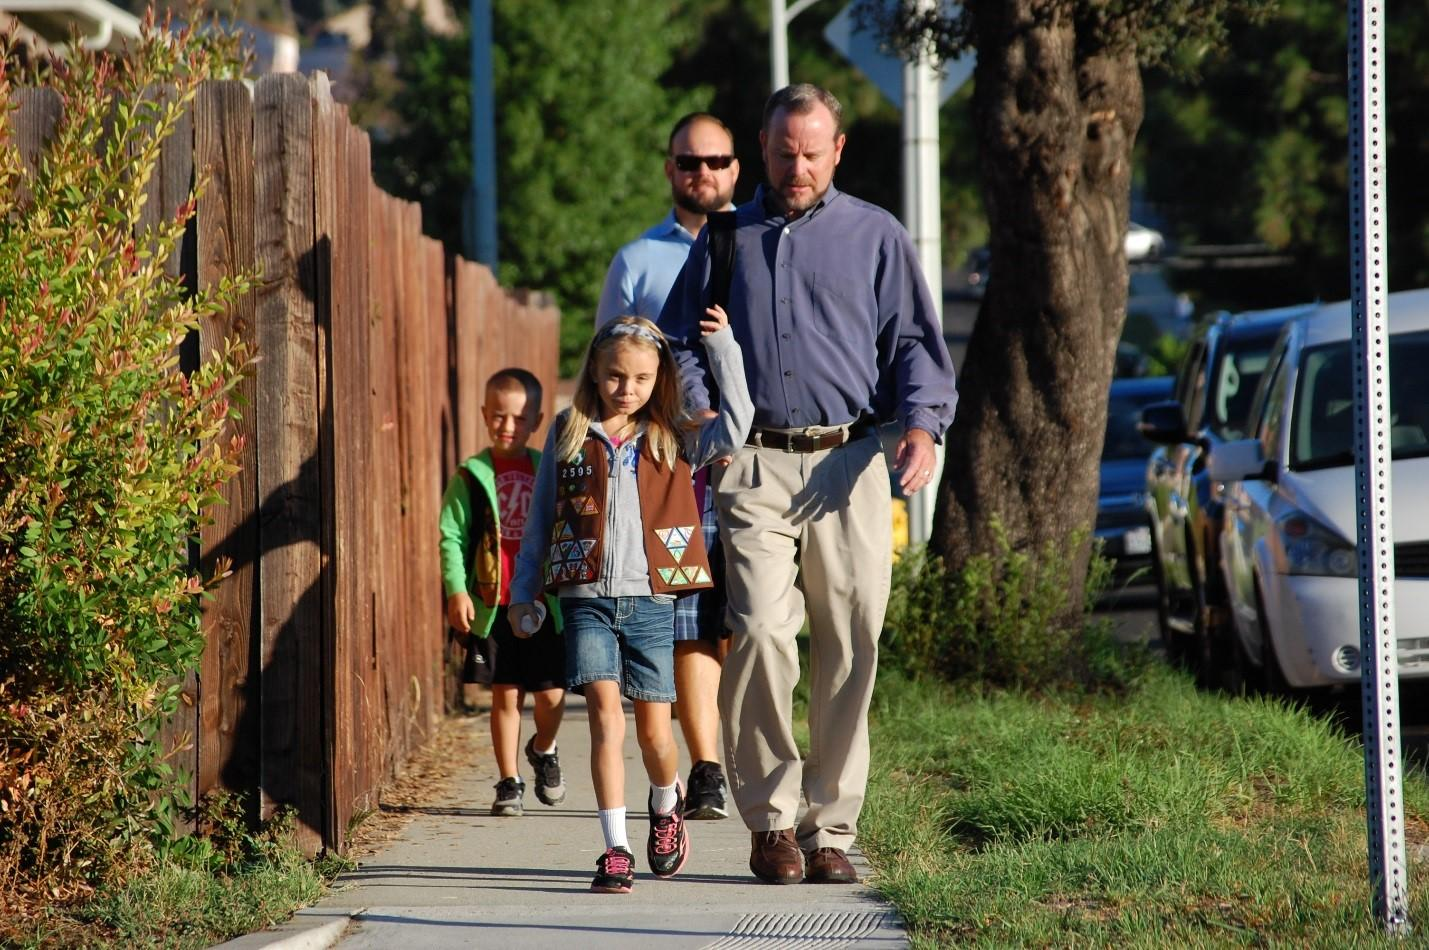 The trio of teachers meet up on a daily basis to walk their children to Evergreen.